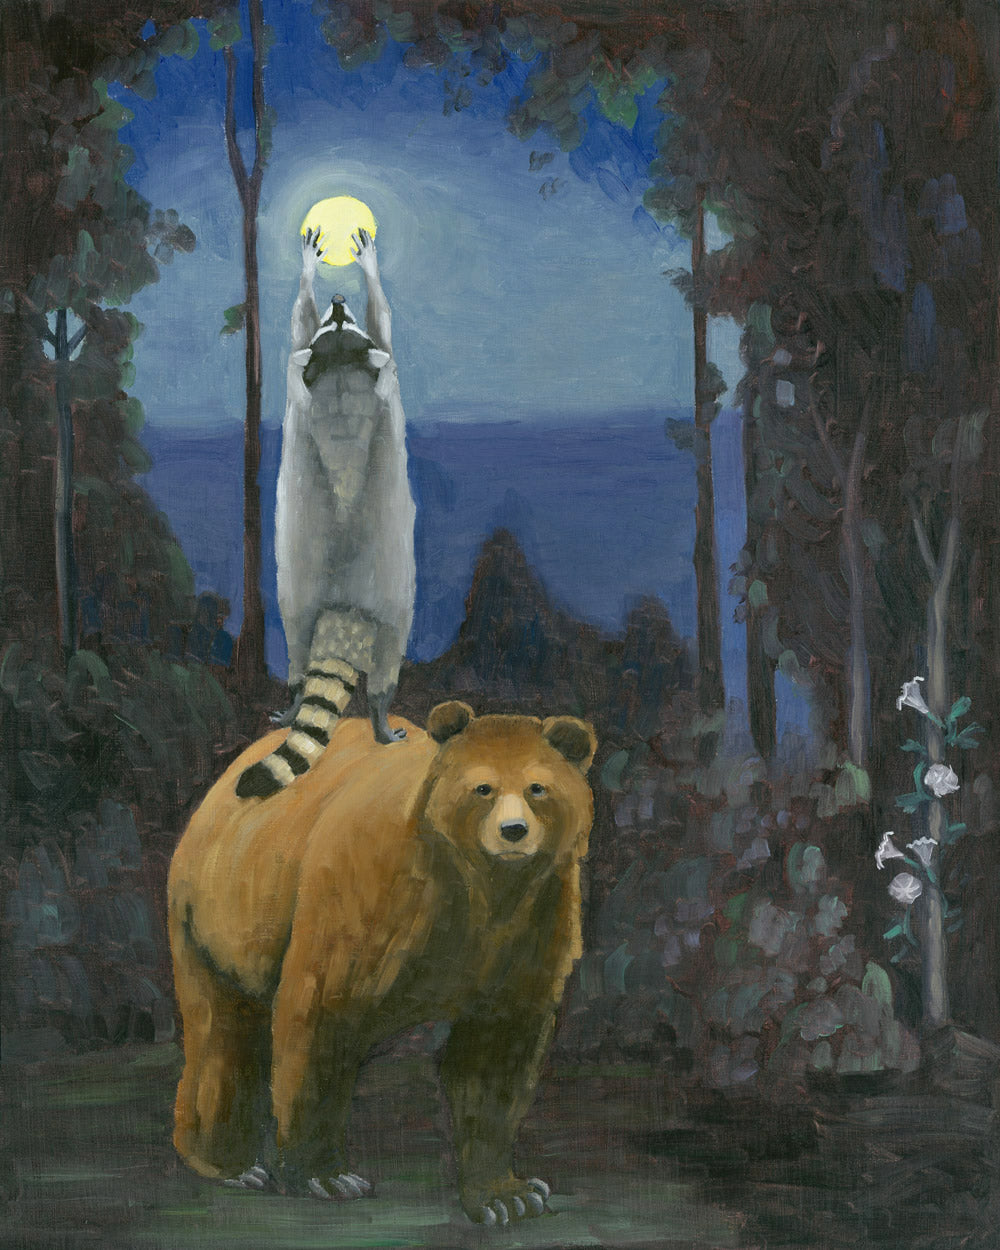 Bear and Raccoon w/ Full Moon - 8x10 Limited Edition Print